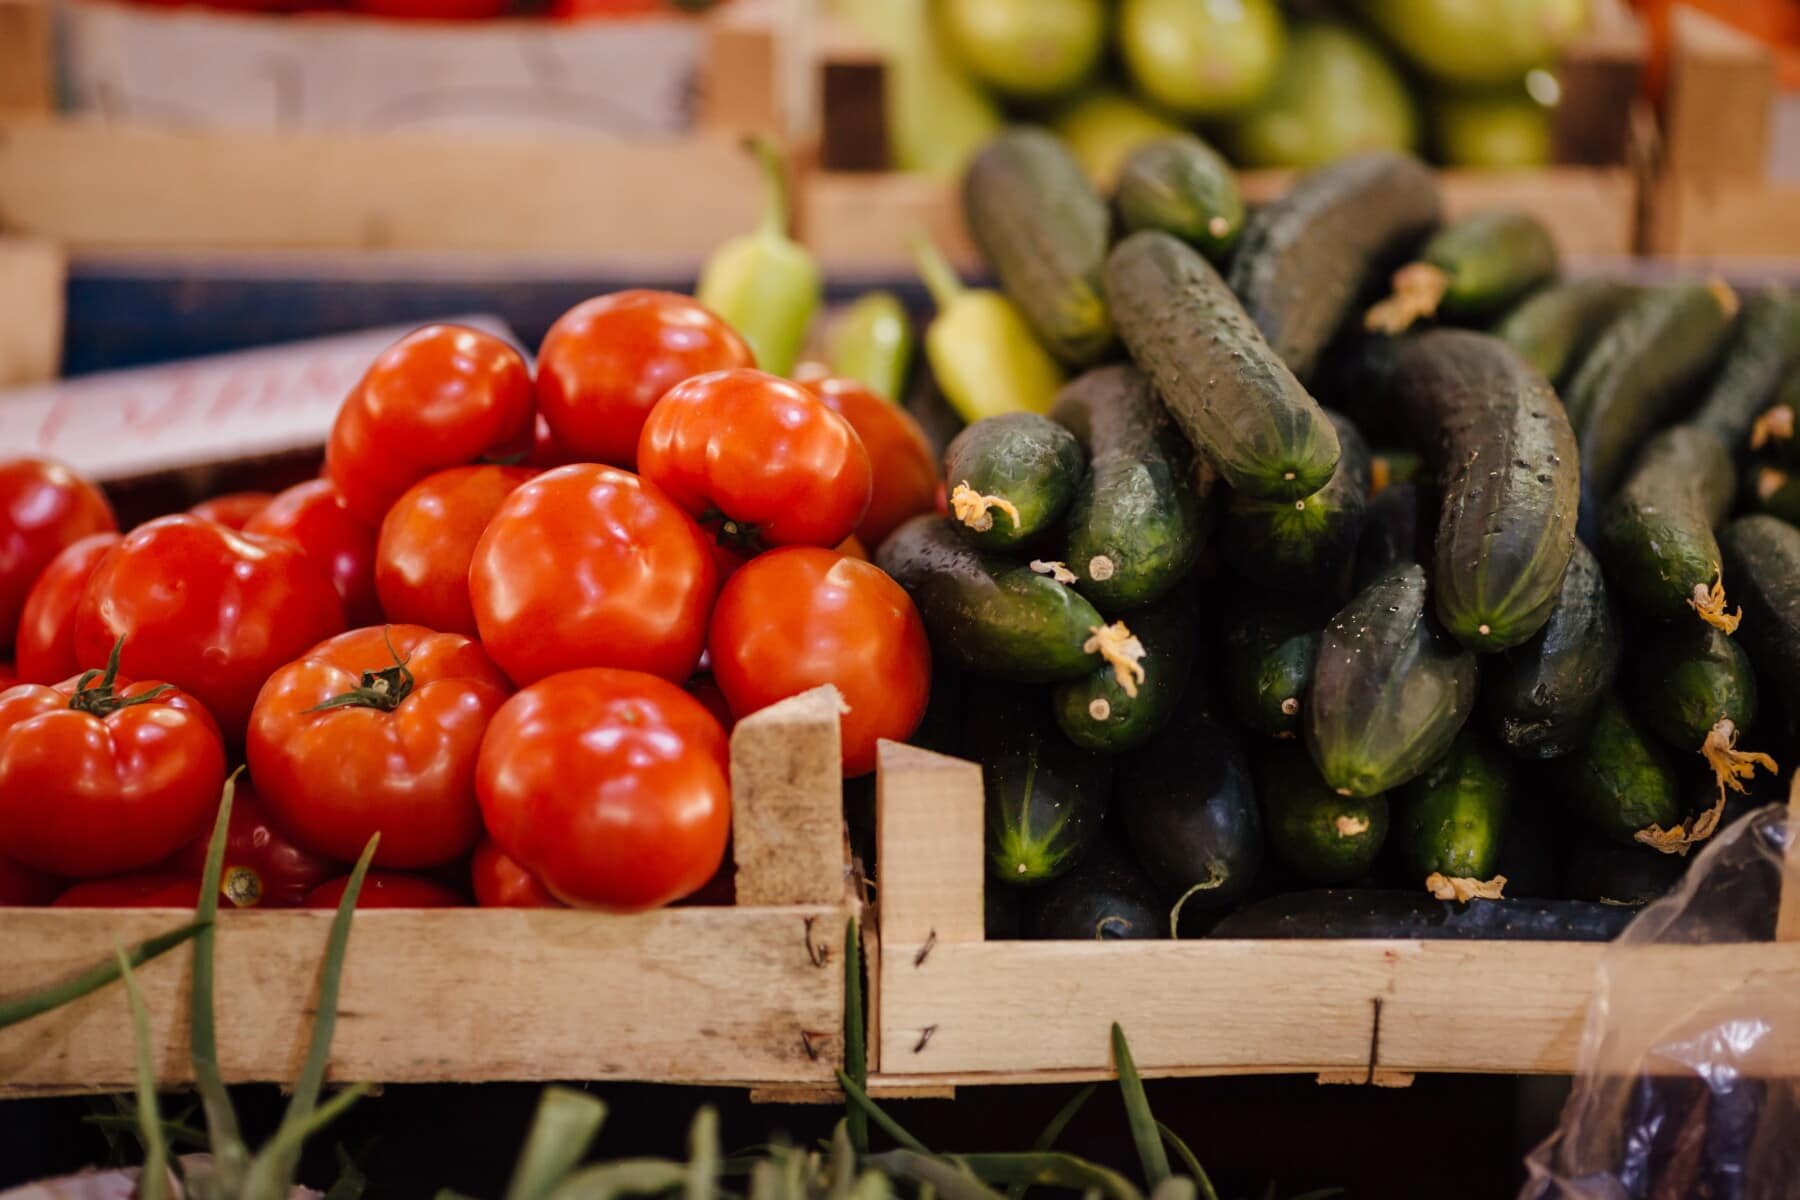 red, tomatoes, groceries, marketplace, shopping, cucumber, products, agriculture, vegetables, tomato